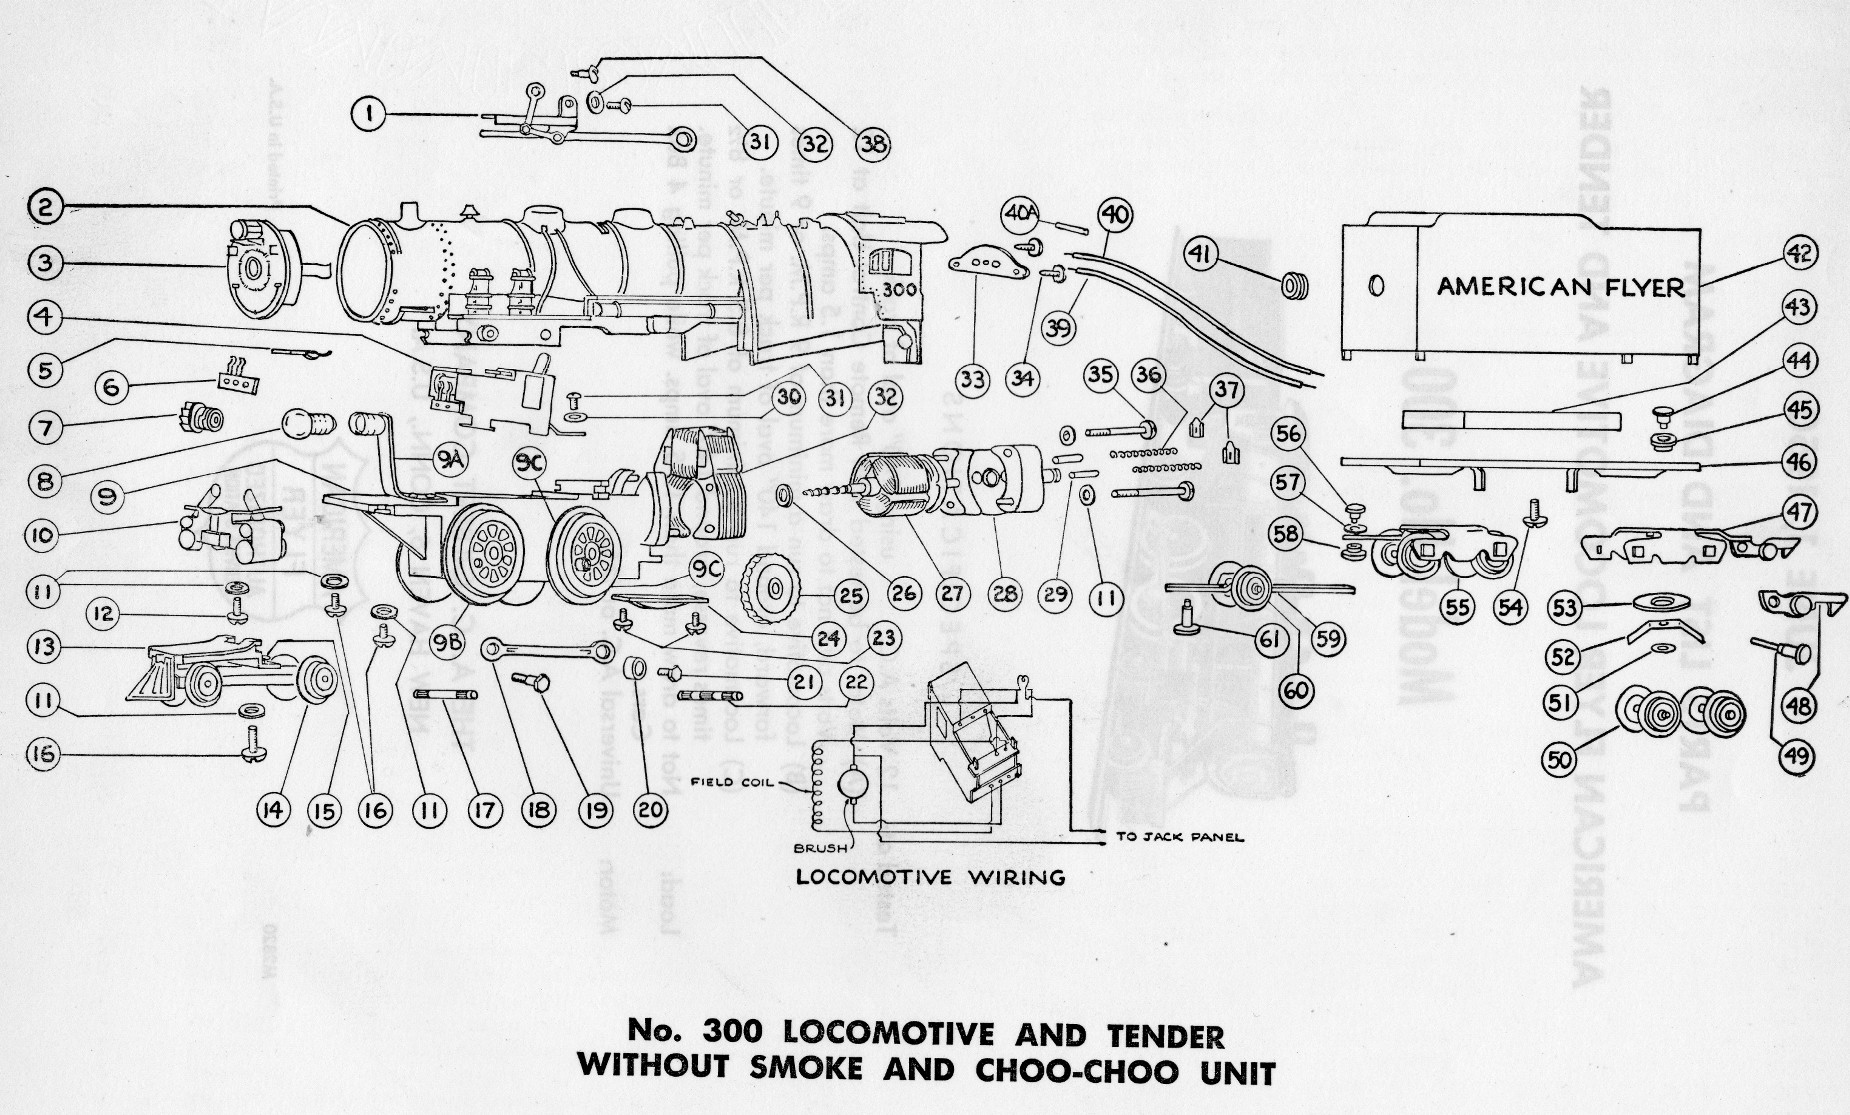 american flyer locomotive  parts list diagram traindr